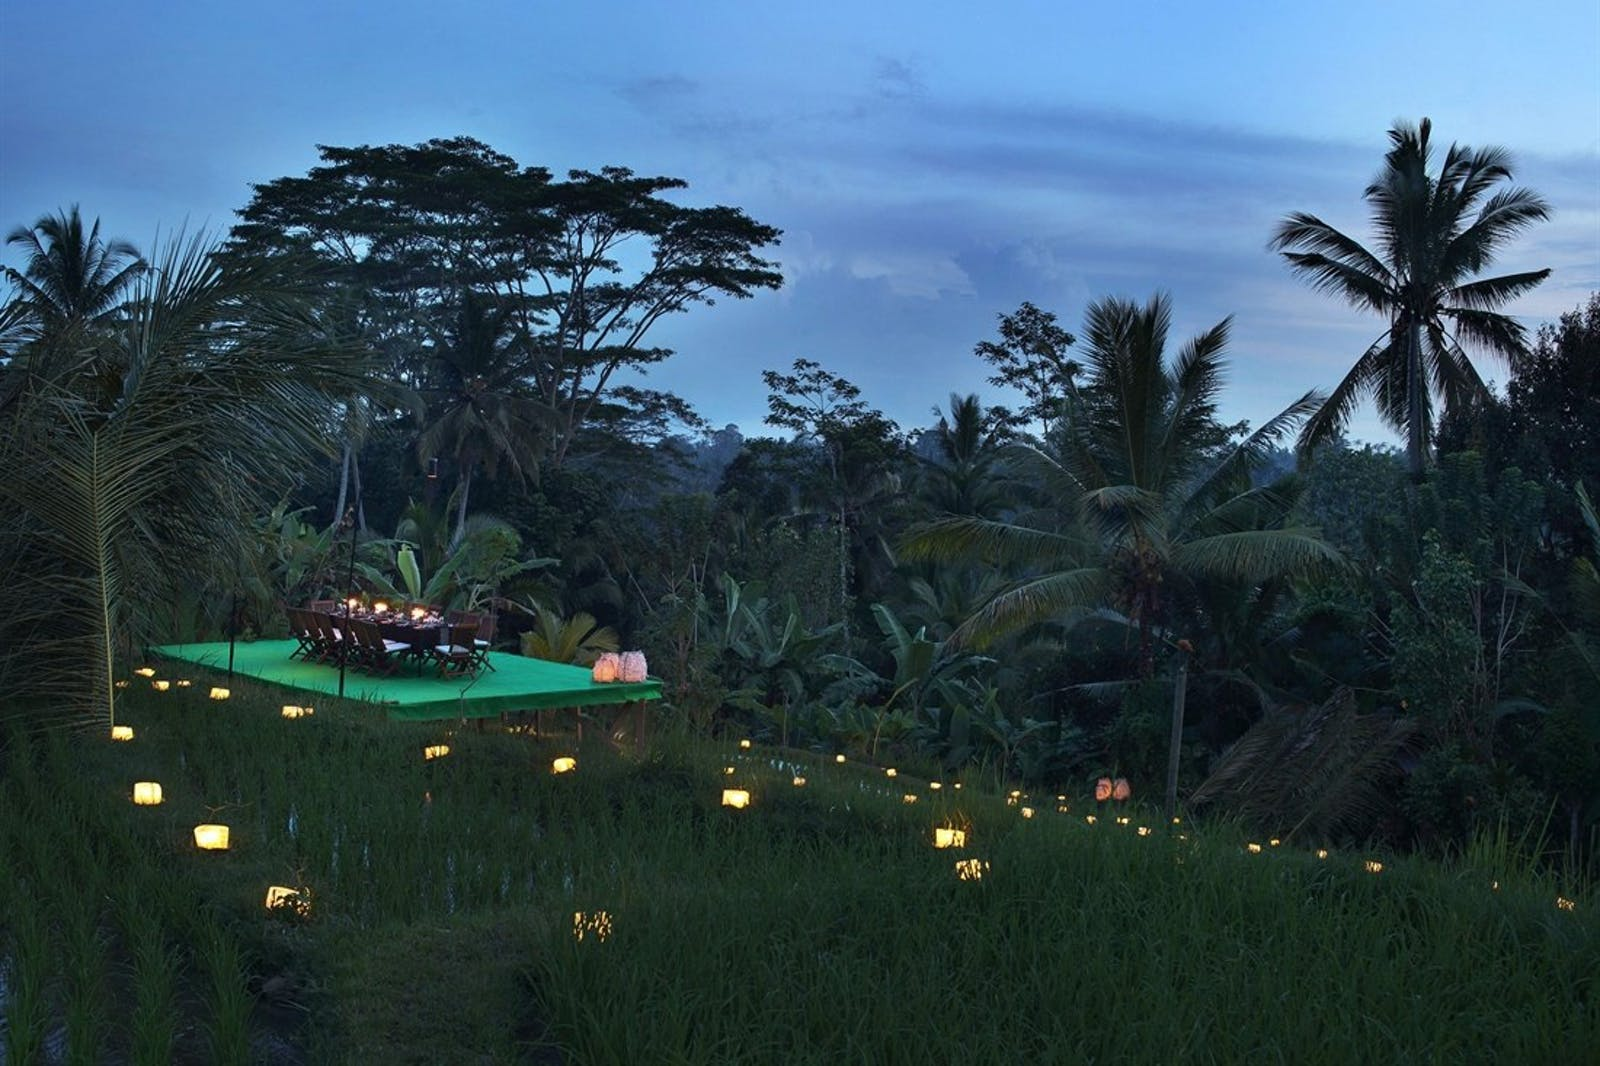 Dining over the Paddies at Alila Ubud, Bali